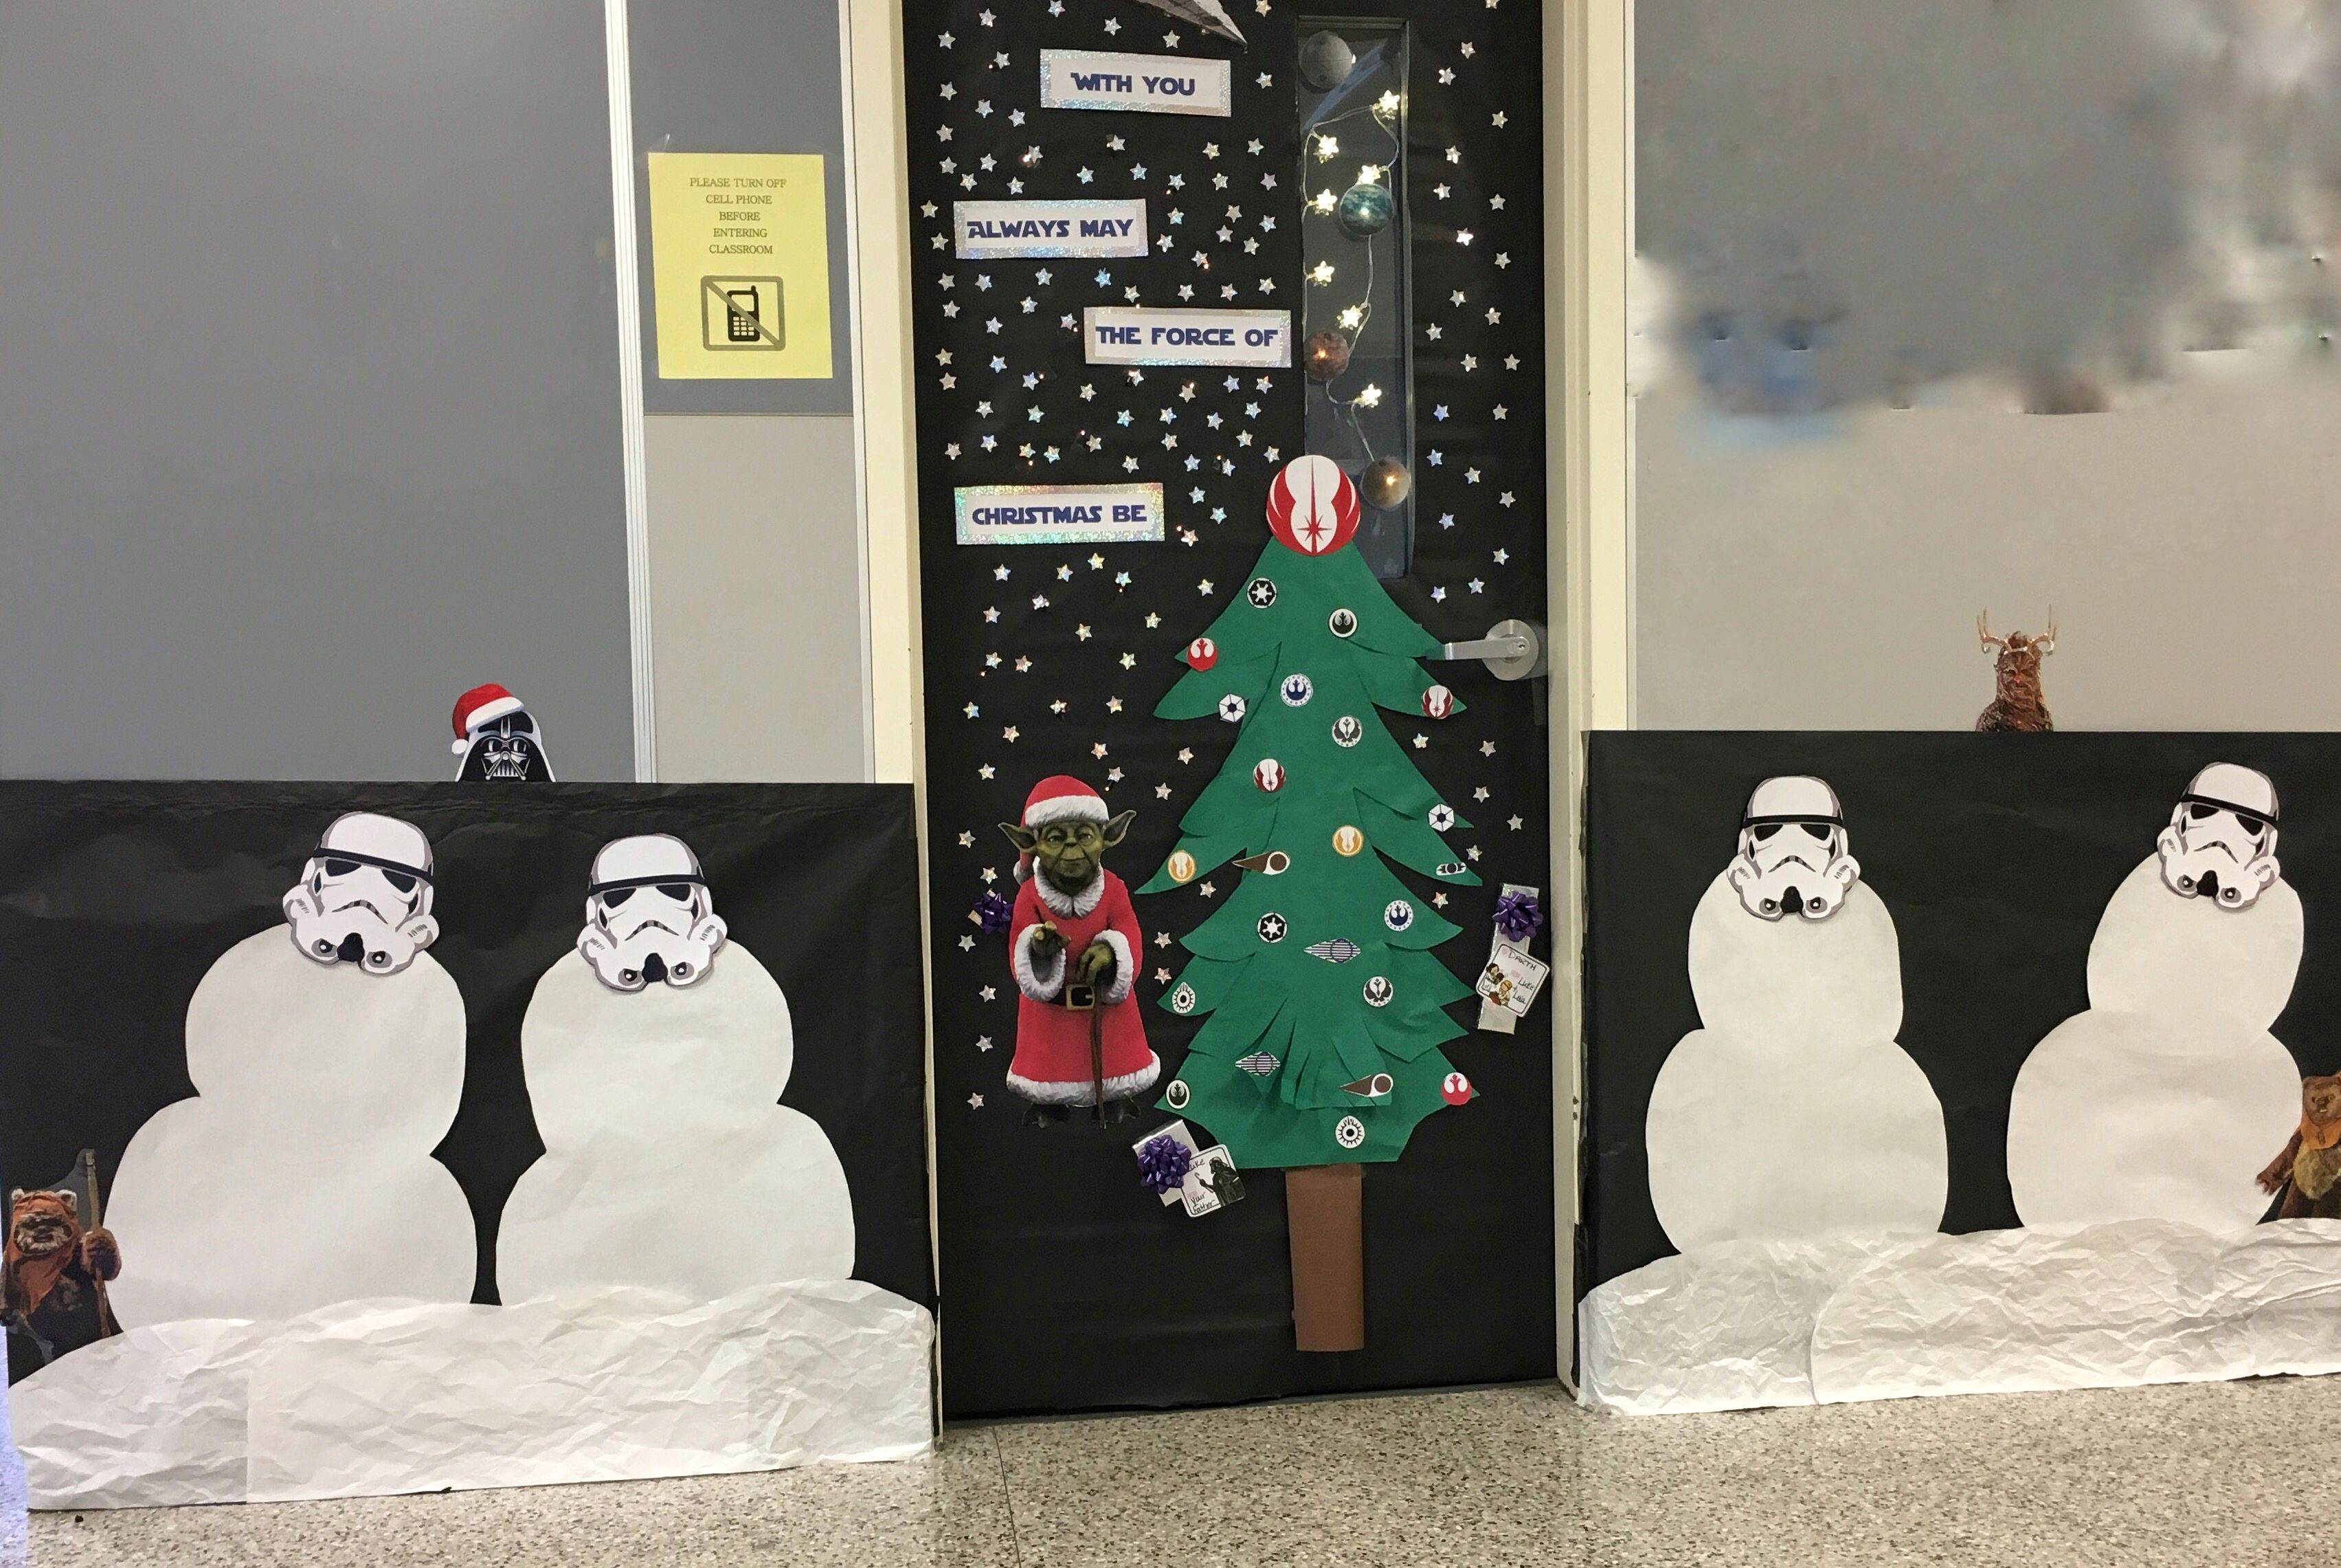 Star Wars Christmas For The Door Decorating Contest At Our High School Star Wars Christmas Decorations Christmas Classroom Door Office Christmas Decorations